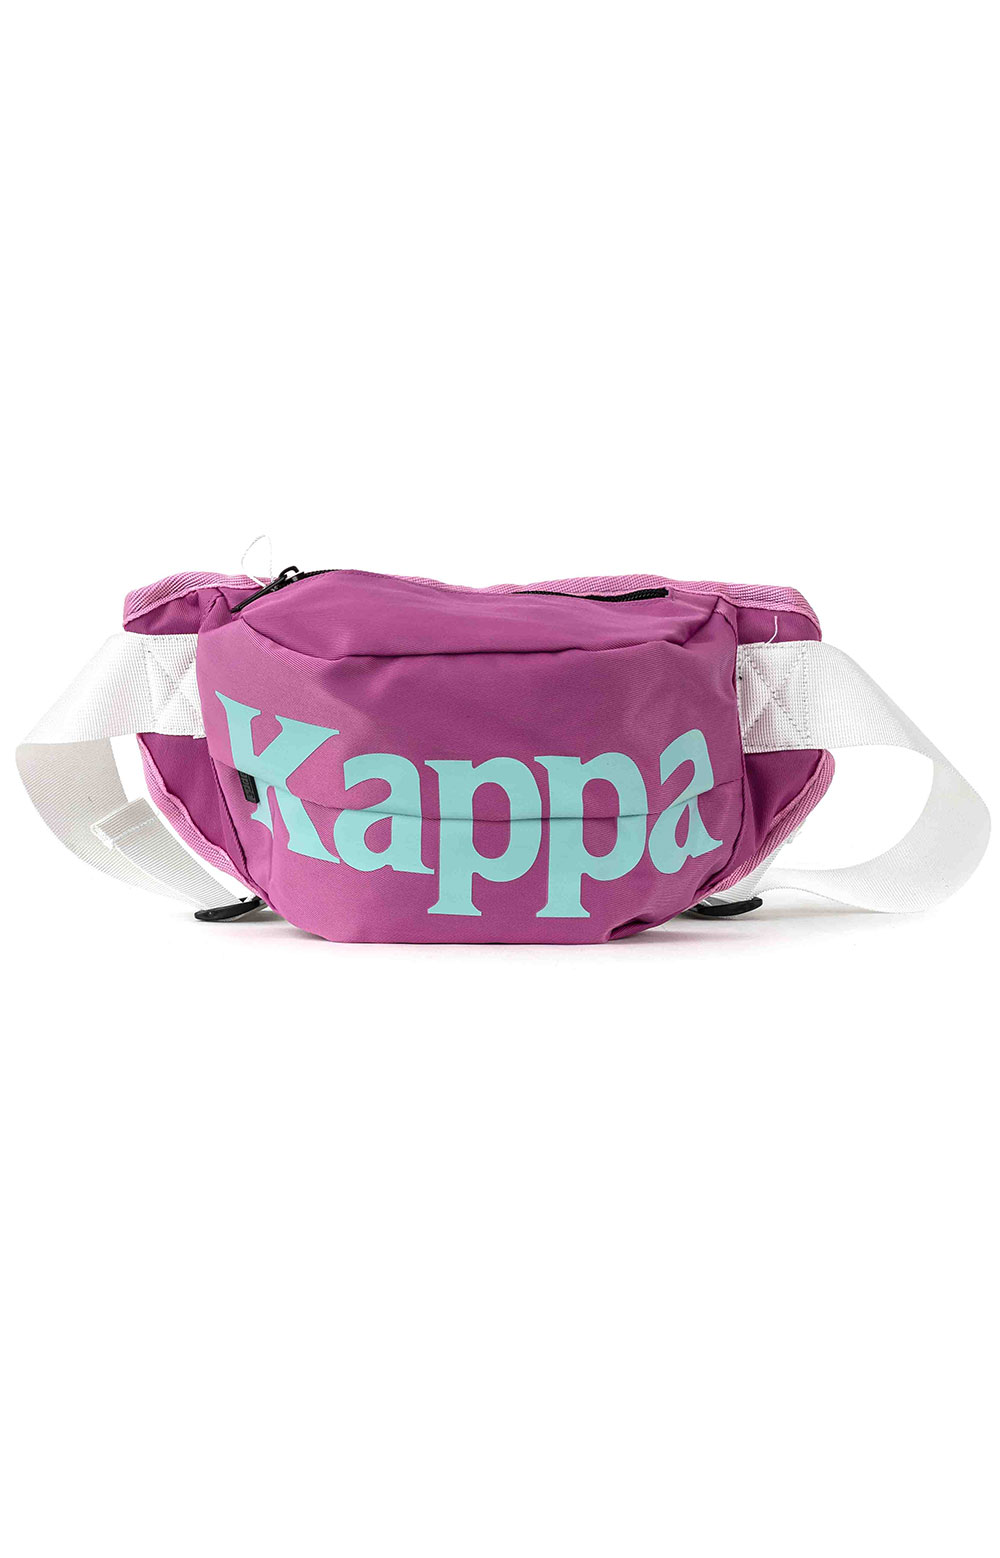 Authentic Cabala Waist Bag - Pink